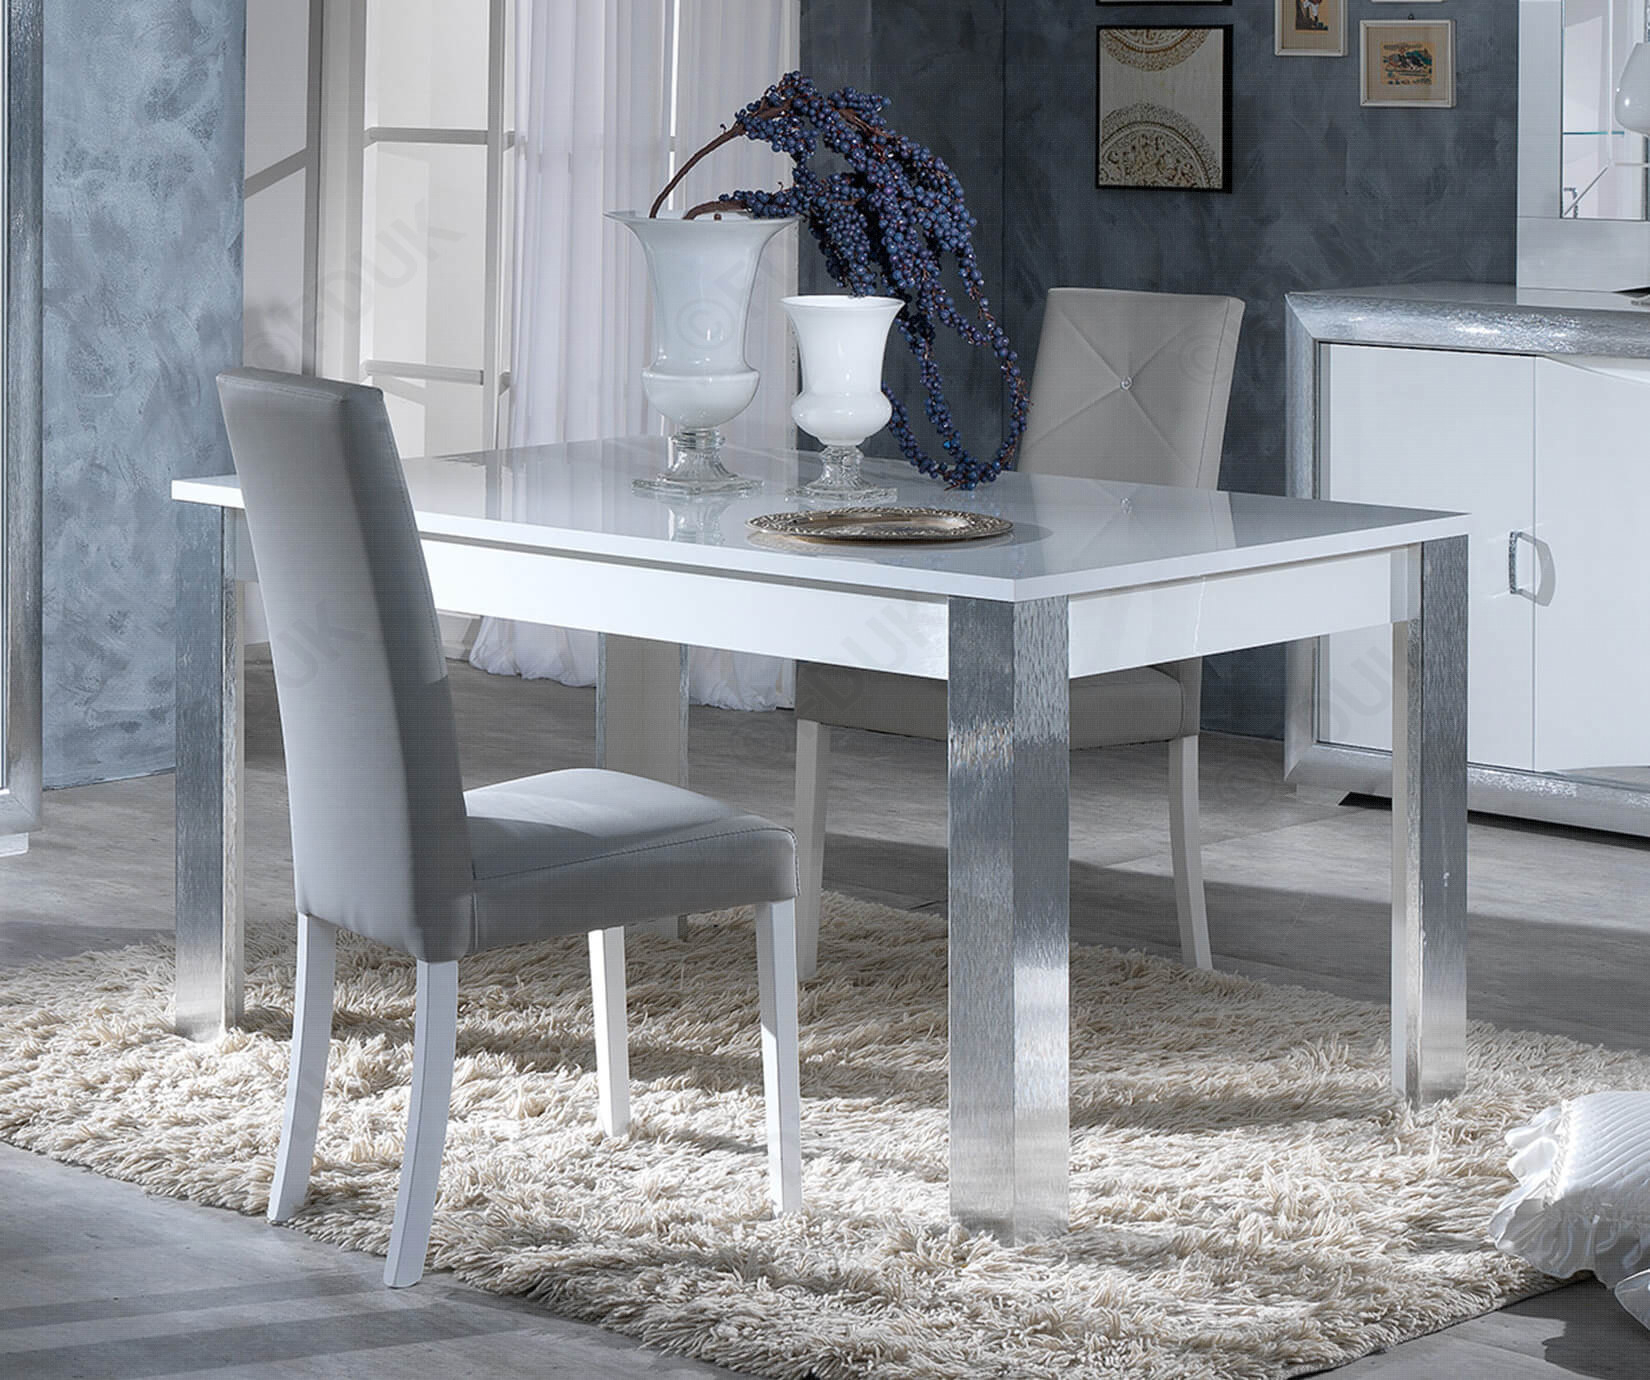 San Martino Dolcevita Rectangular Extension Dining Table Inside Current Martino Dining Tables (View 14 of 25)